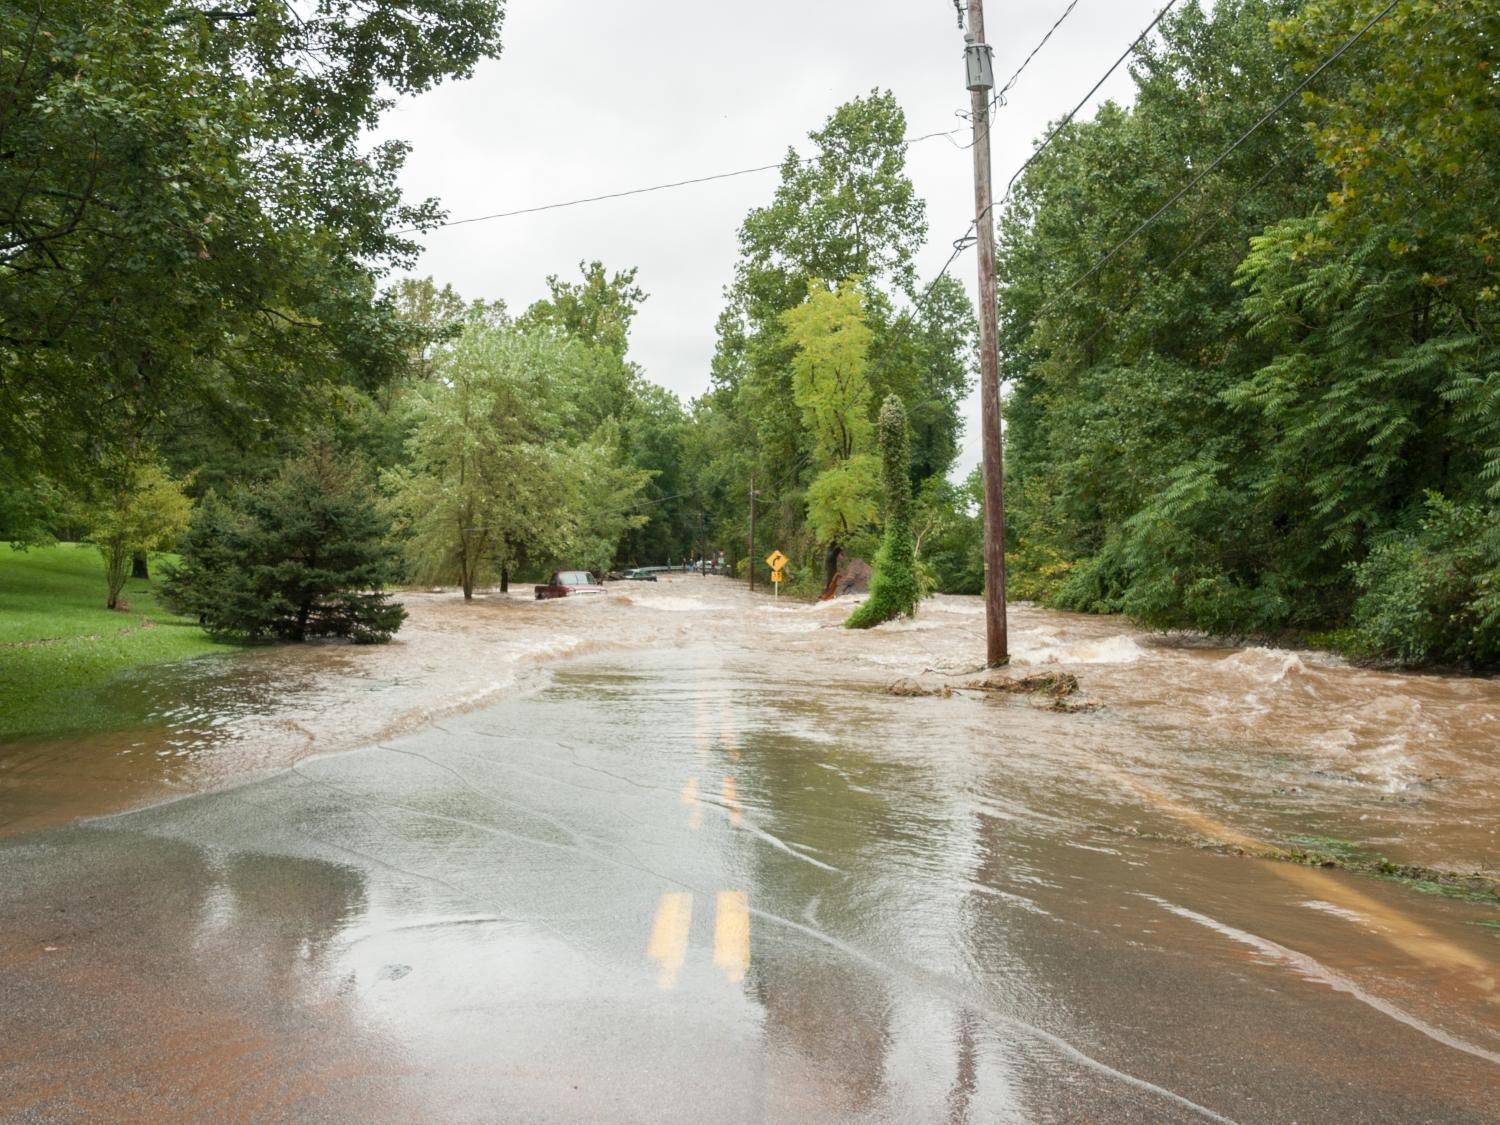 Flooding causes damage property and roadways